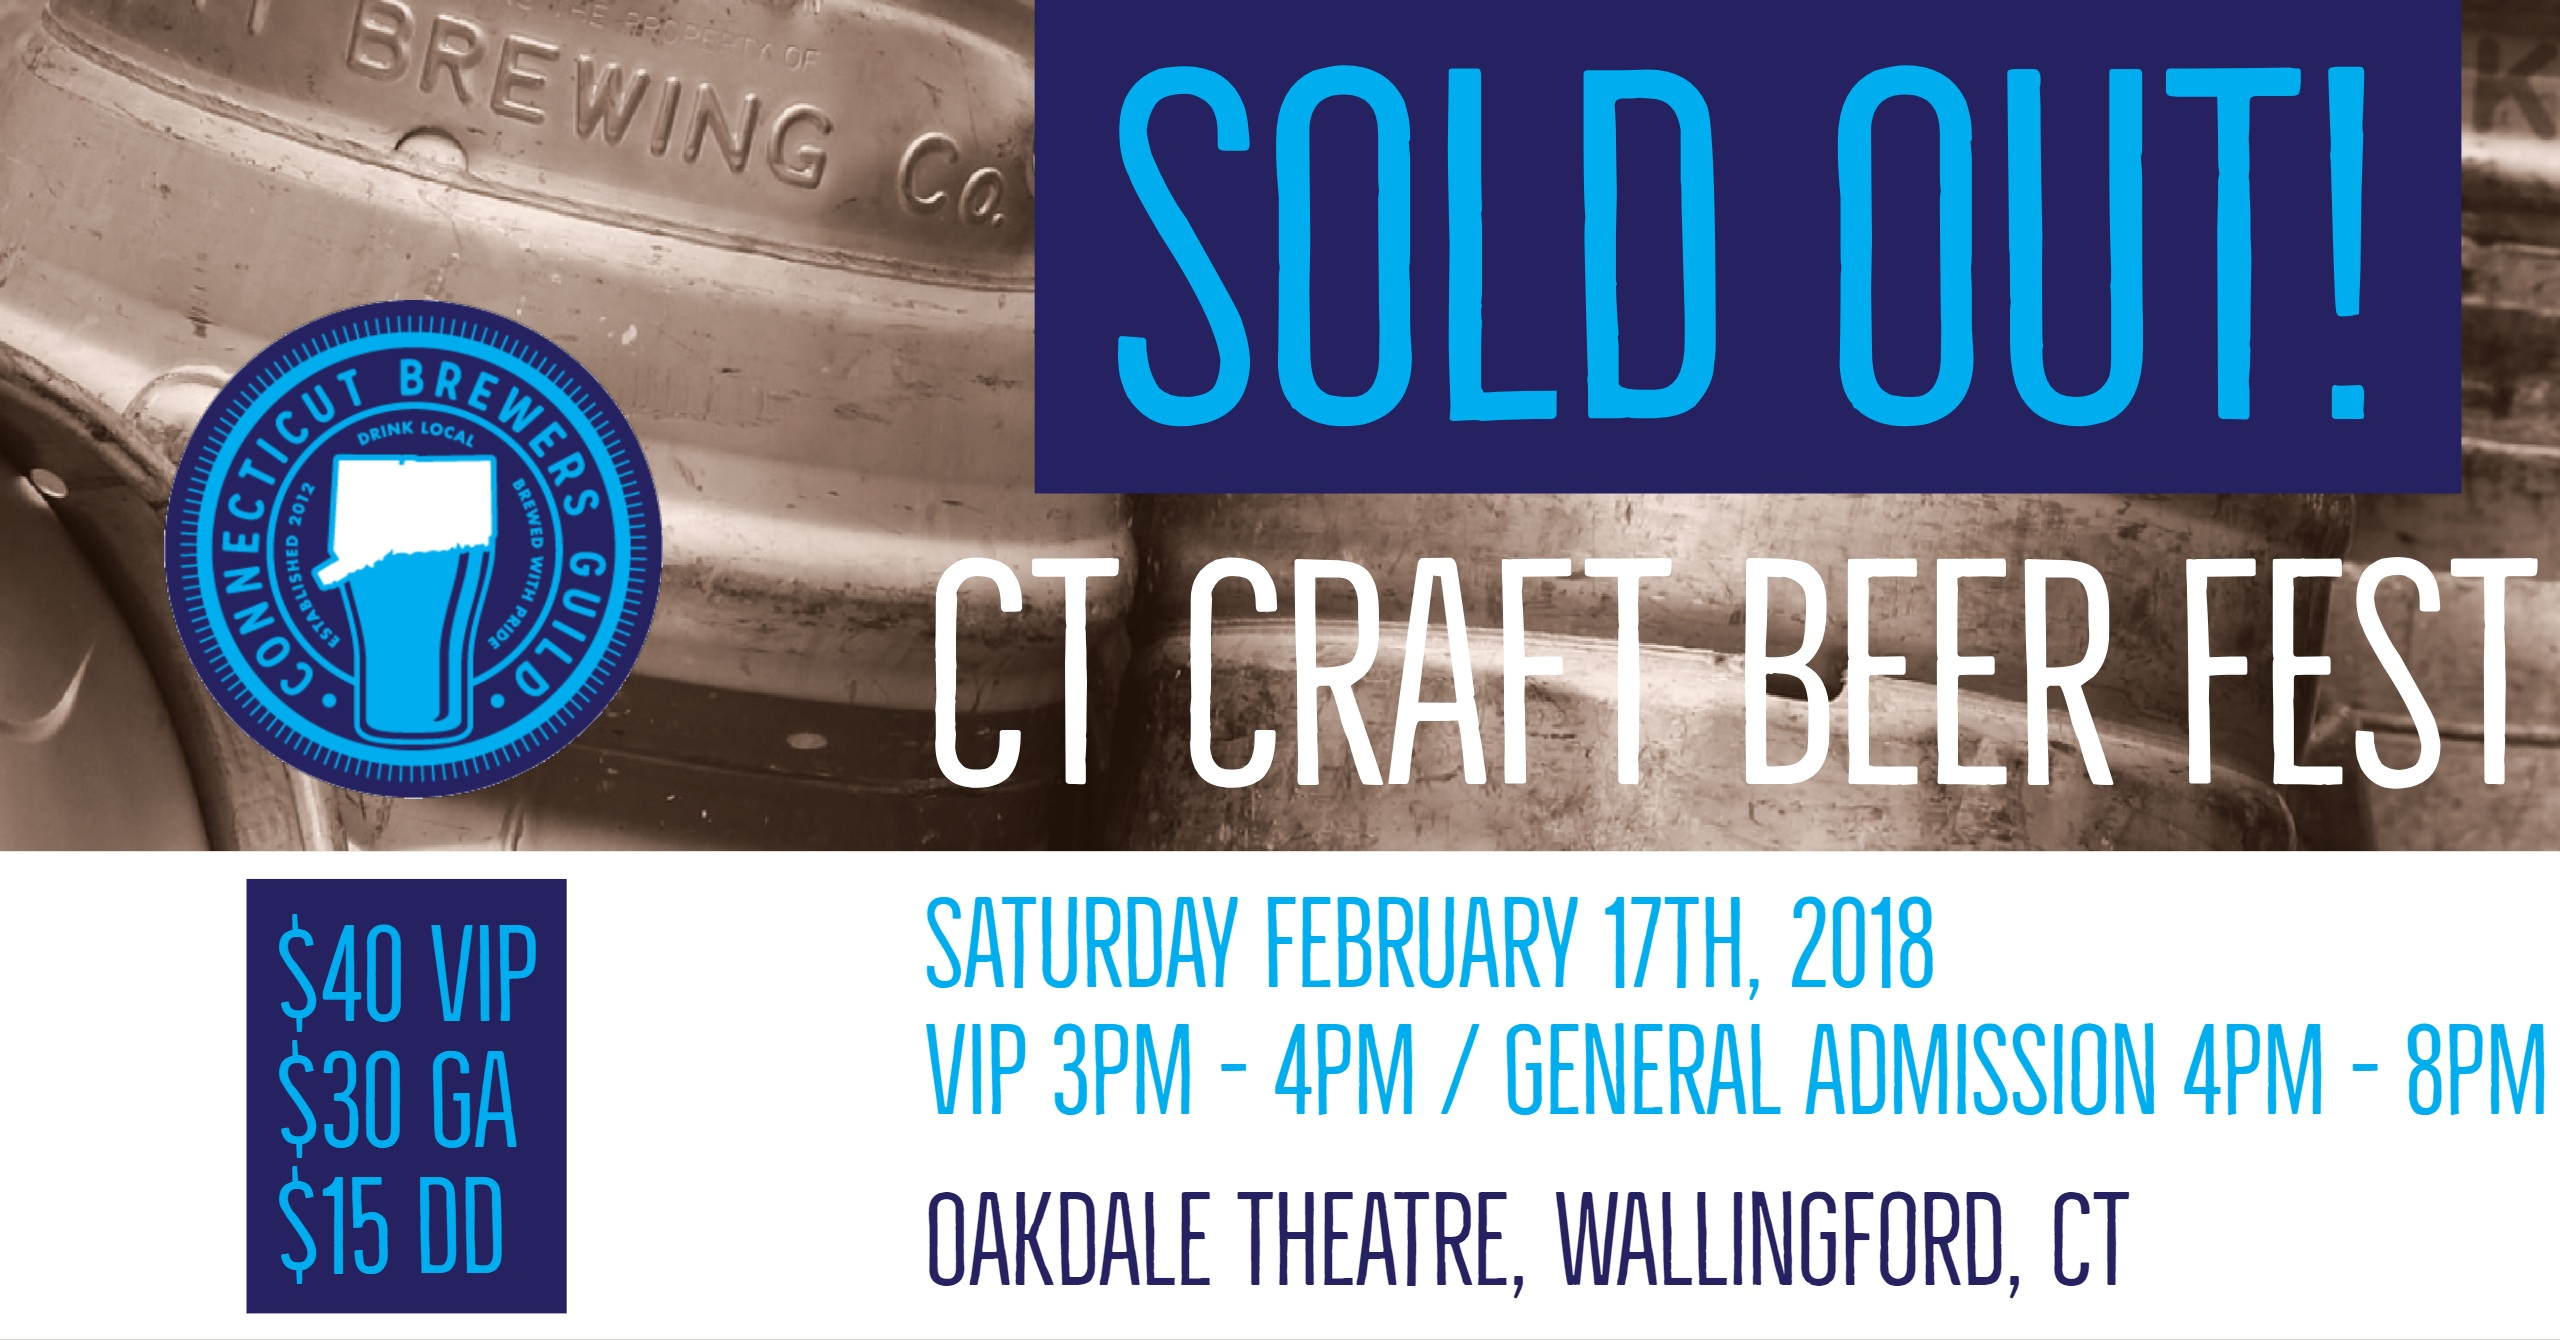 Tickets for CT Craft Beer Fest in Wallingford from BeerFests.com